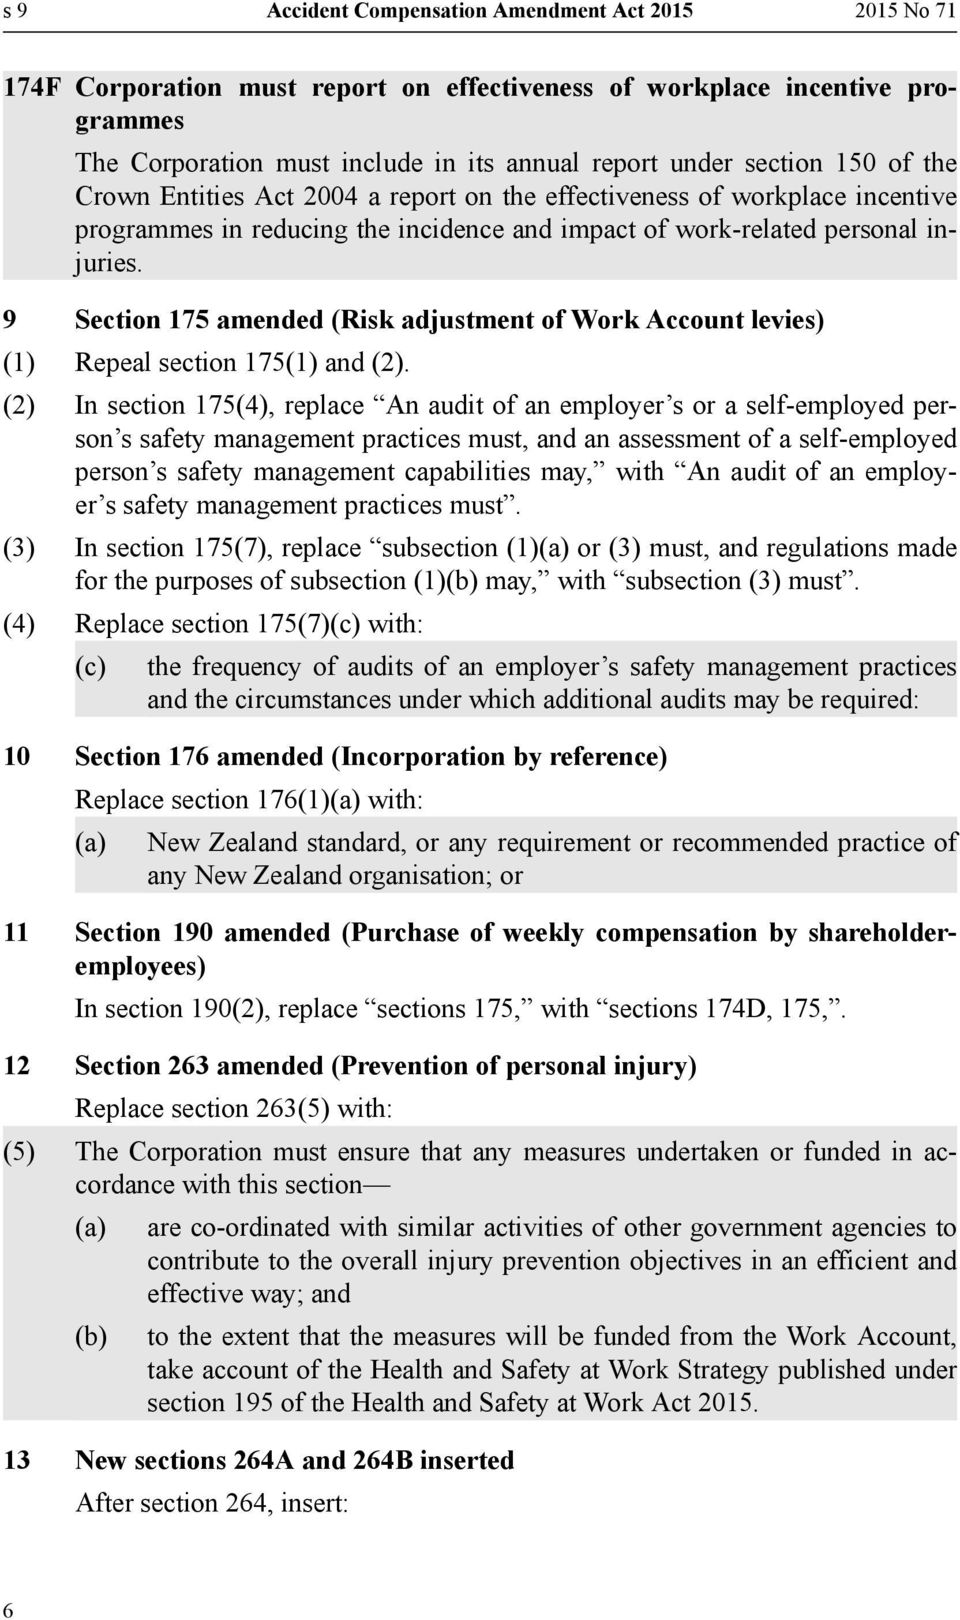 9 Section 175 amended (Risk adjustment of Work Account levies) (1) Repeal section 175(1) and (2).